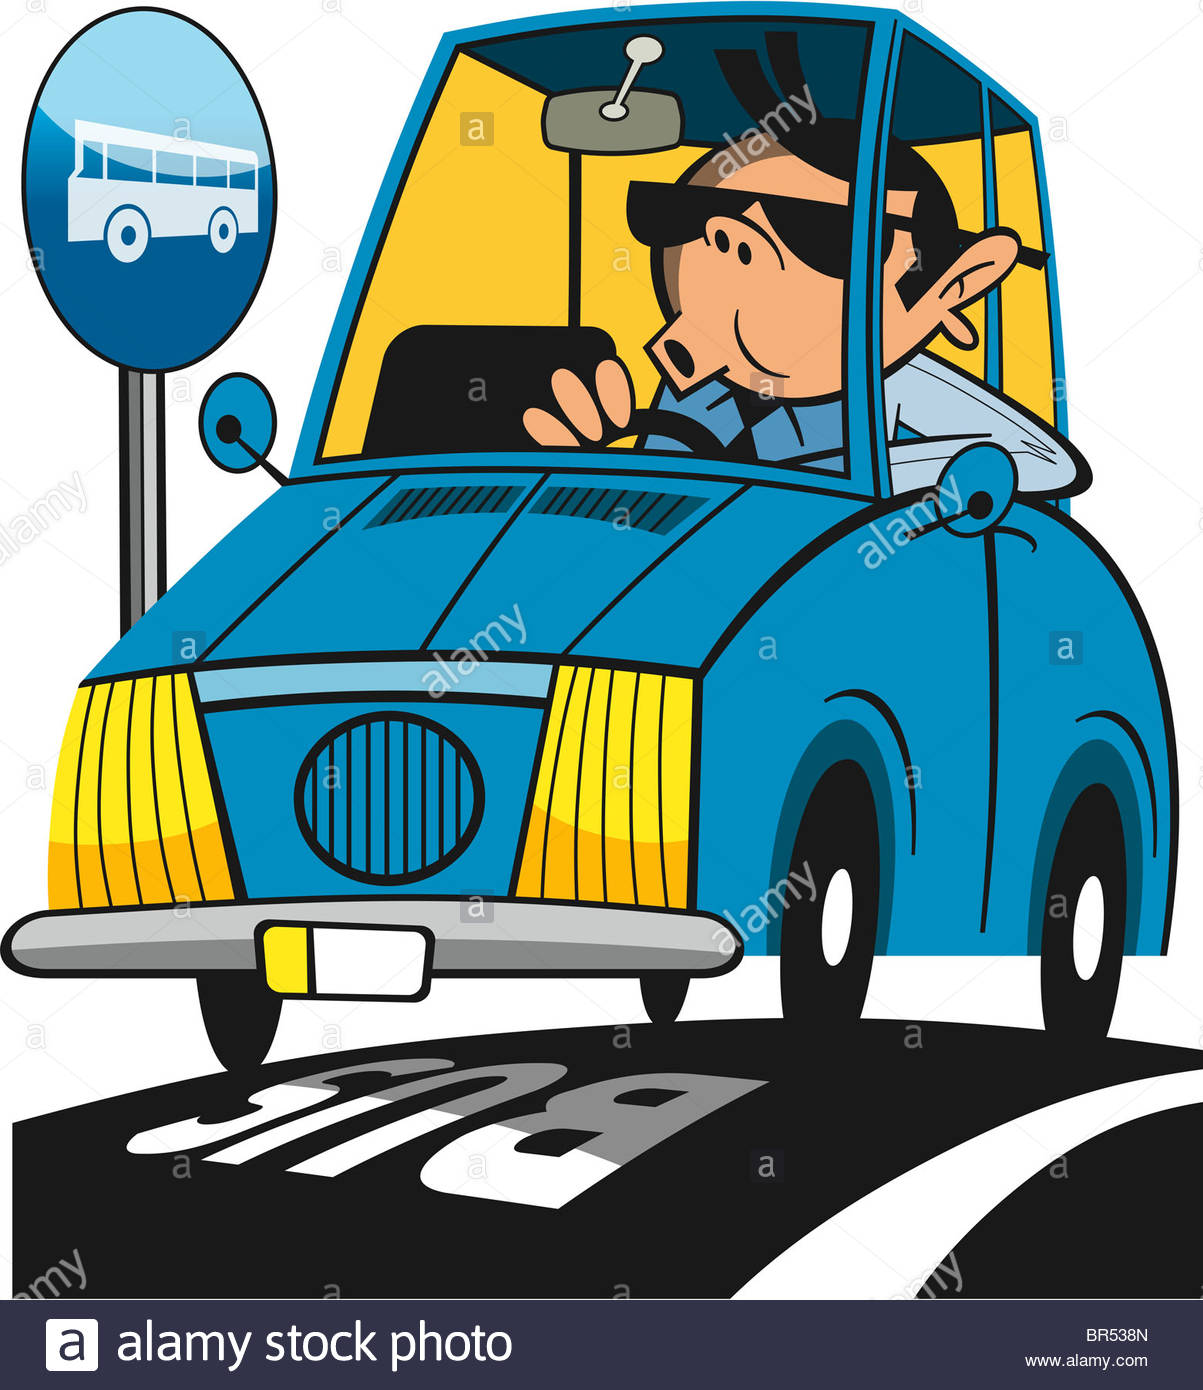 A Man Driving His Car In The Bus Lane Stock Photo, Royalty Free.